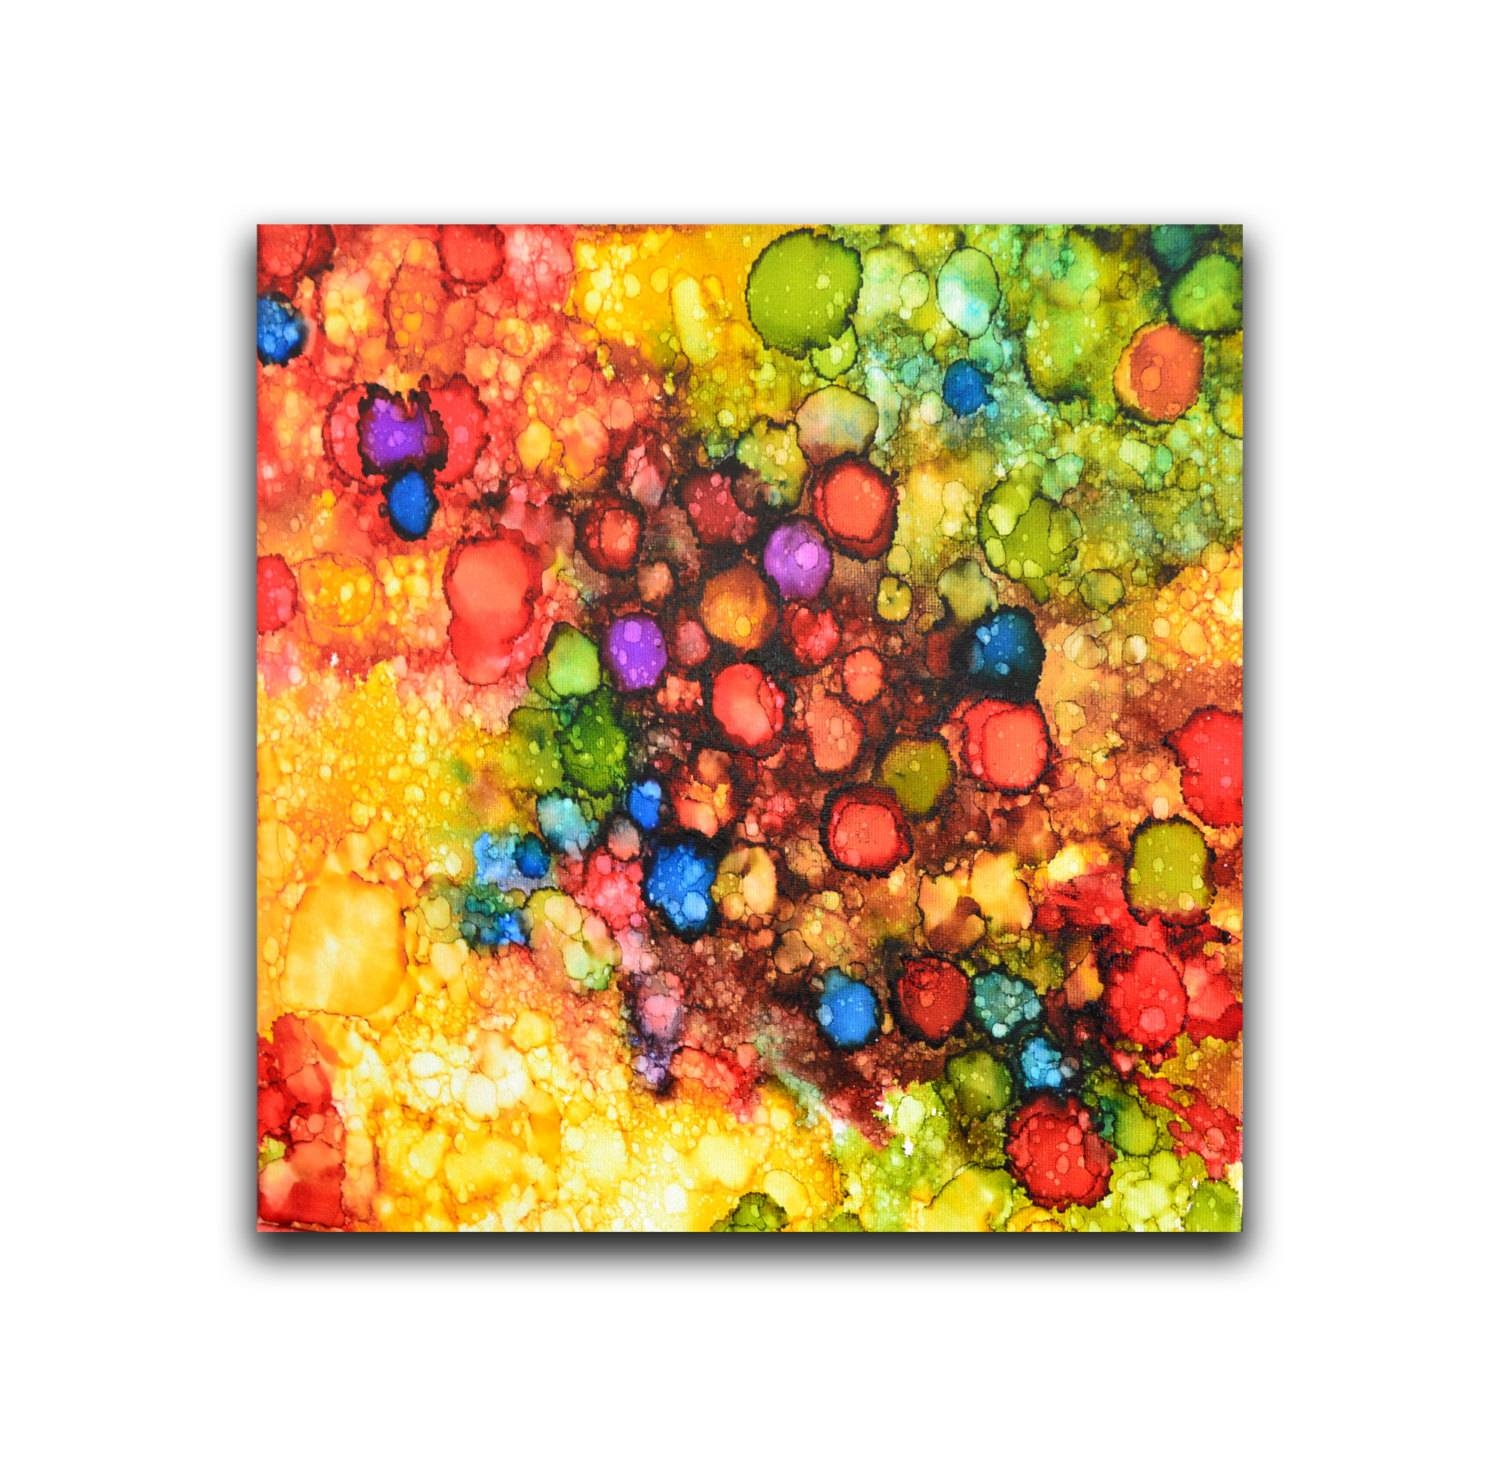 Original Painting Small Canvas Wall Art Decor Kids Room Art for Most Popular Small Canvas Wall Art